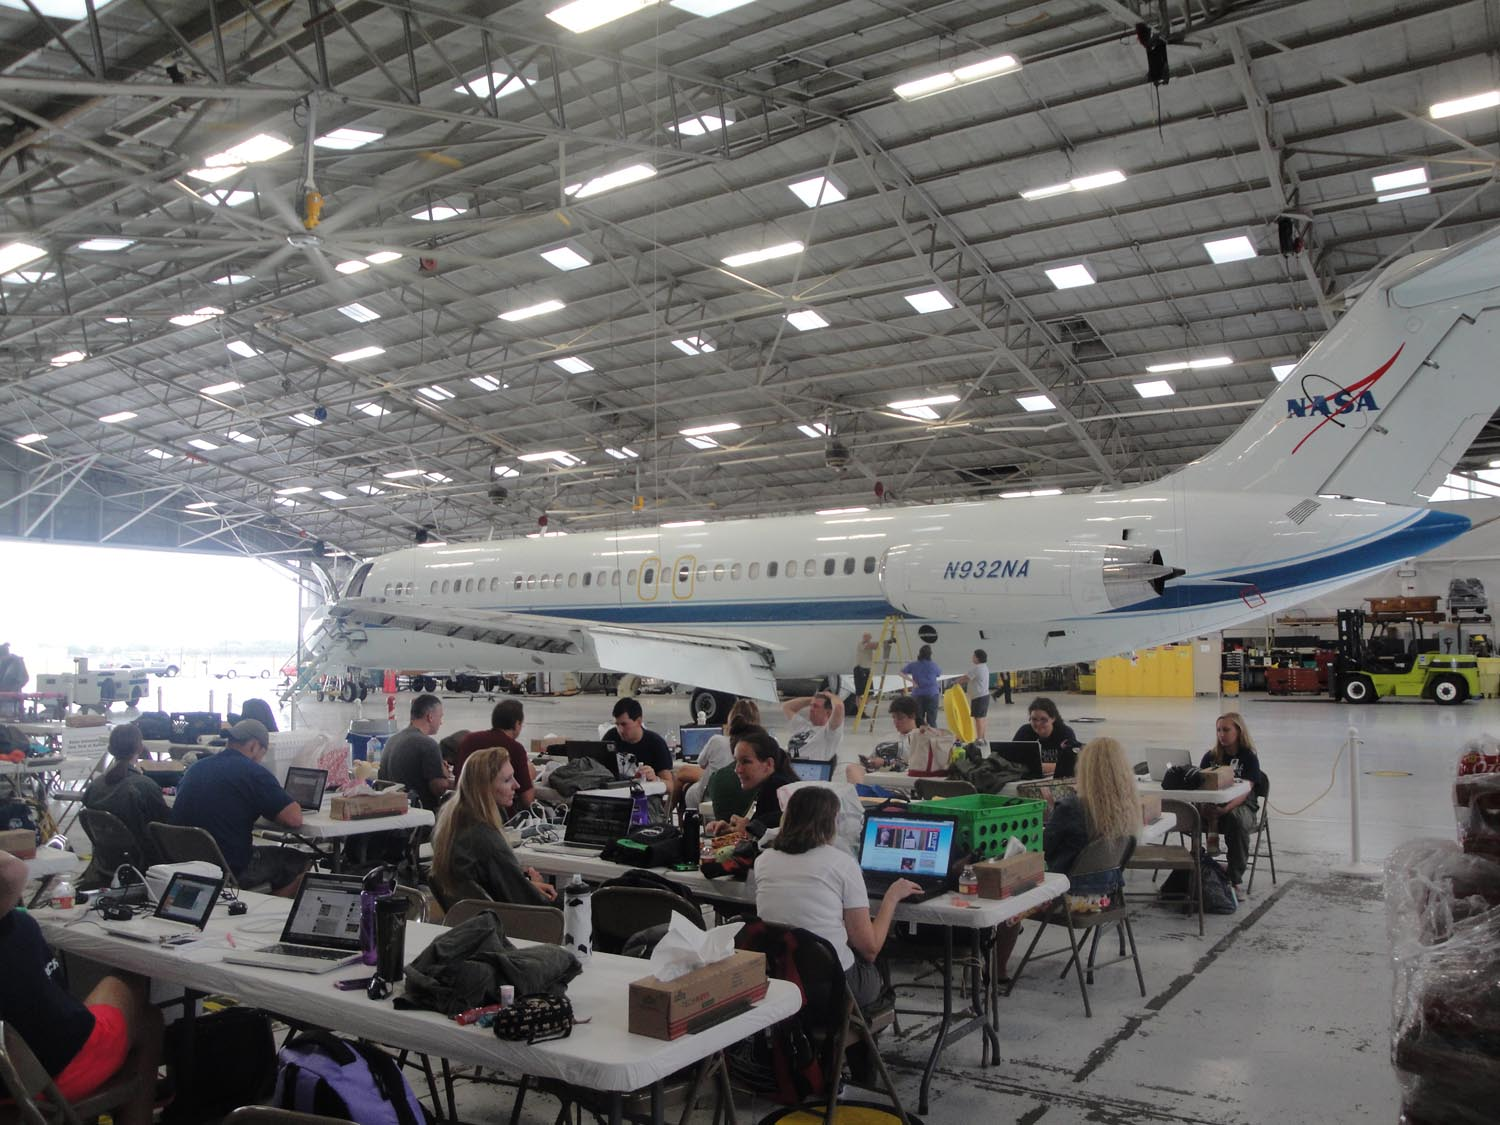 NASA Microgravity University Hangar